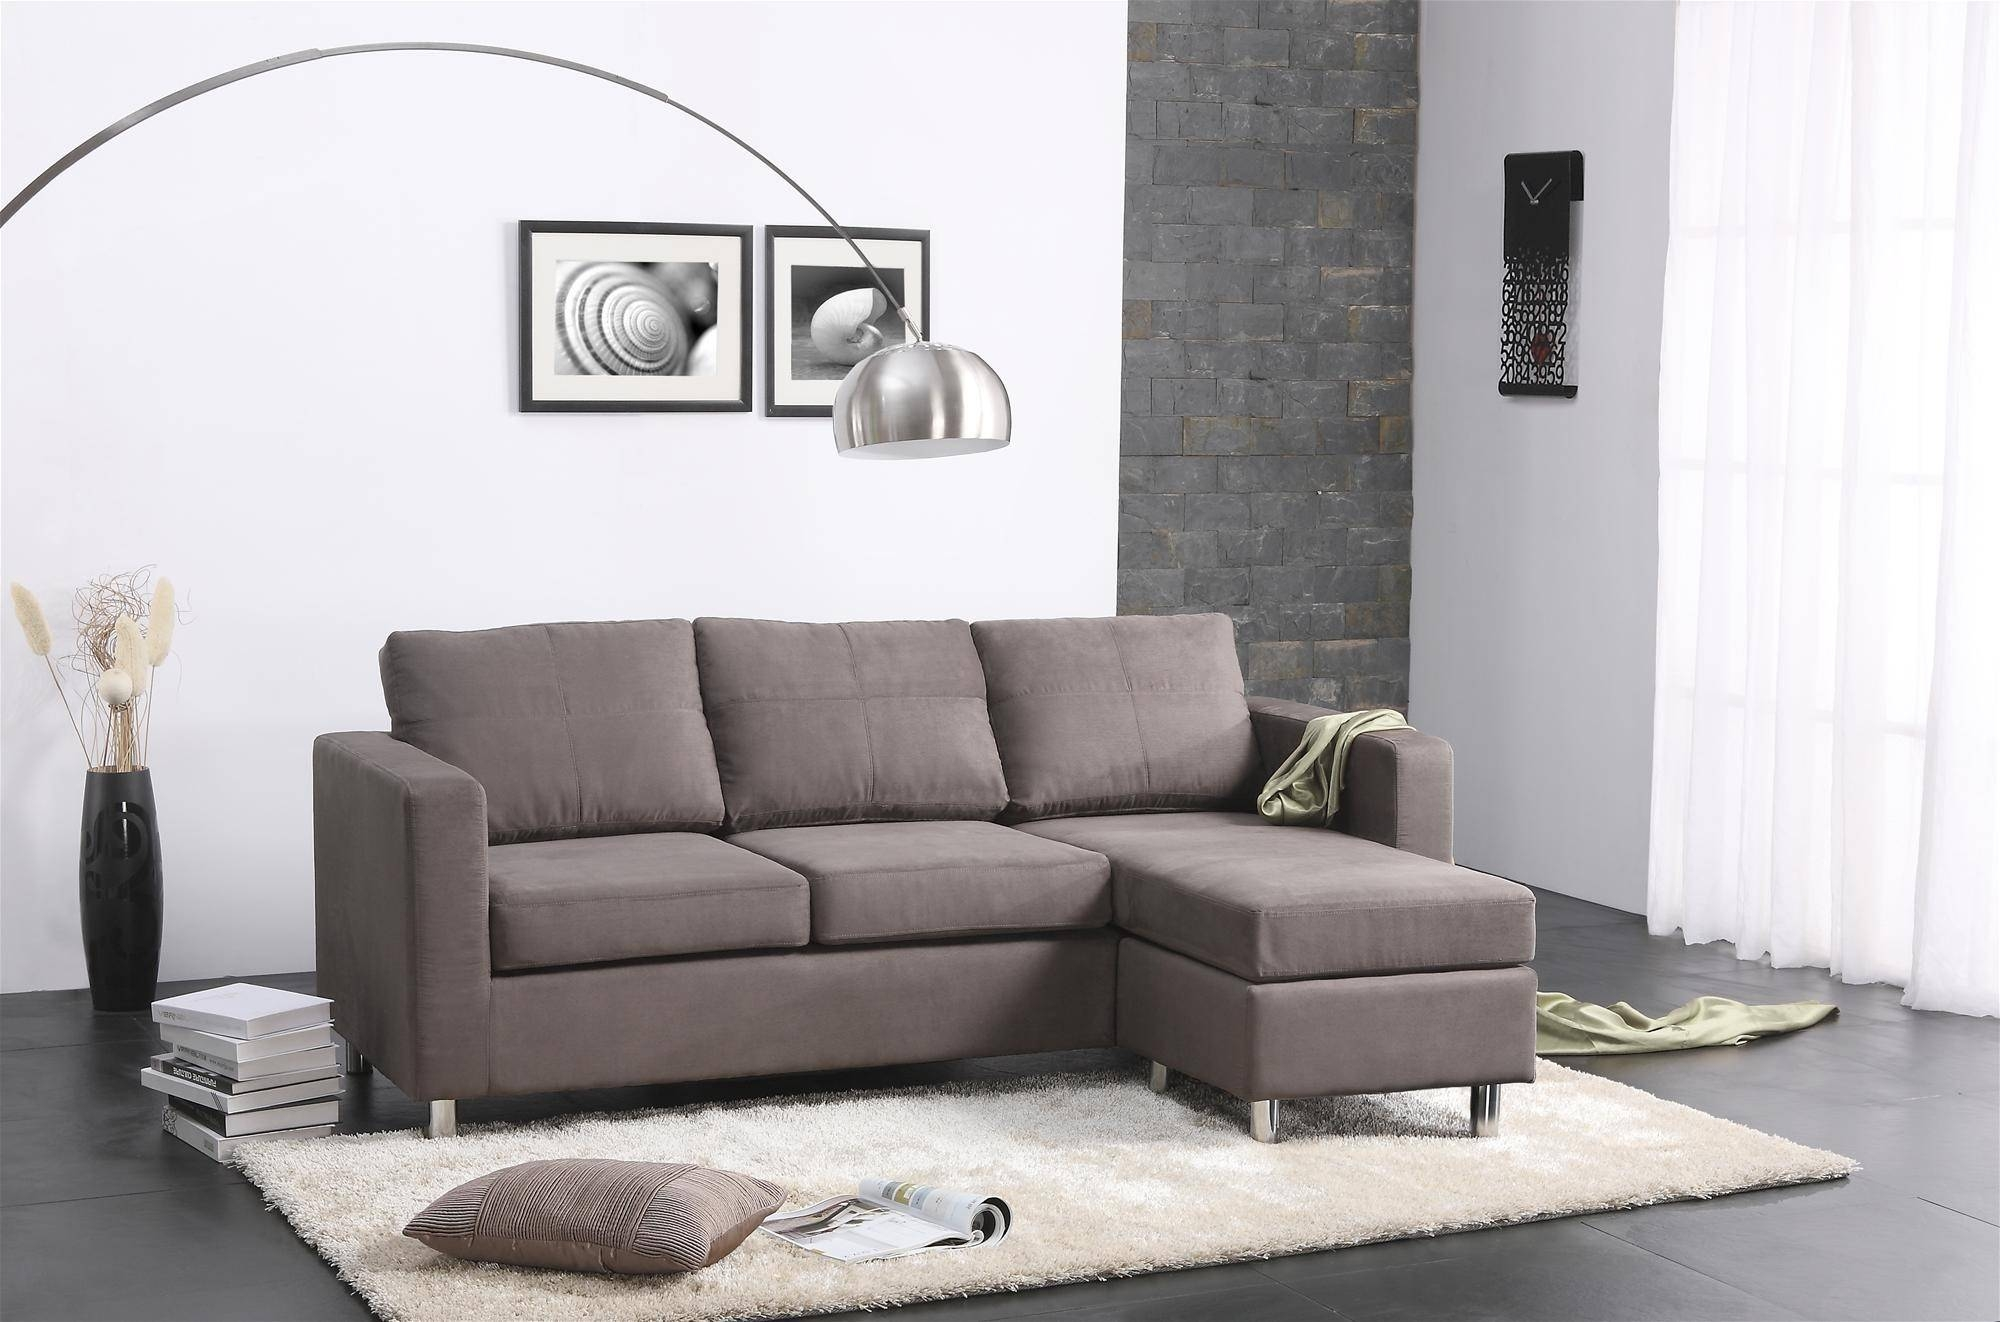 Small Sectional Sofas For Small Spaces - Decofurnish intended for Small L-Shaped Sofas (Image 13 of 15)